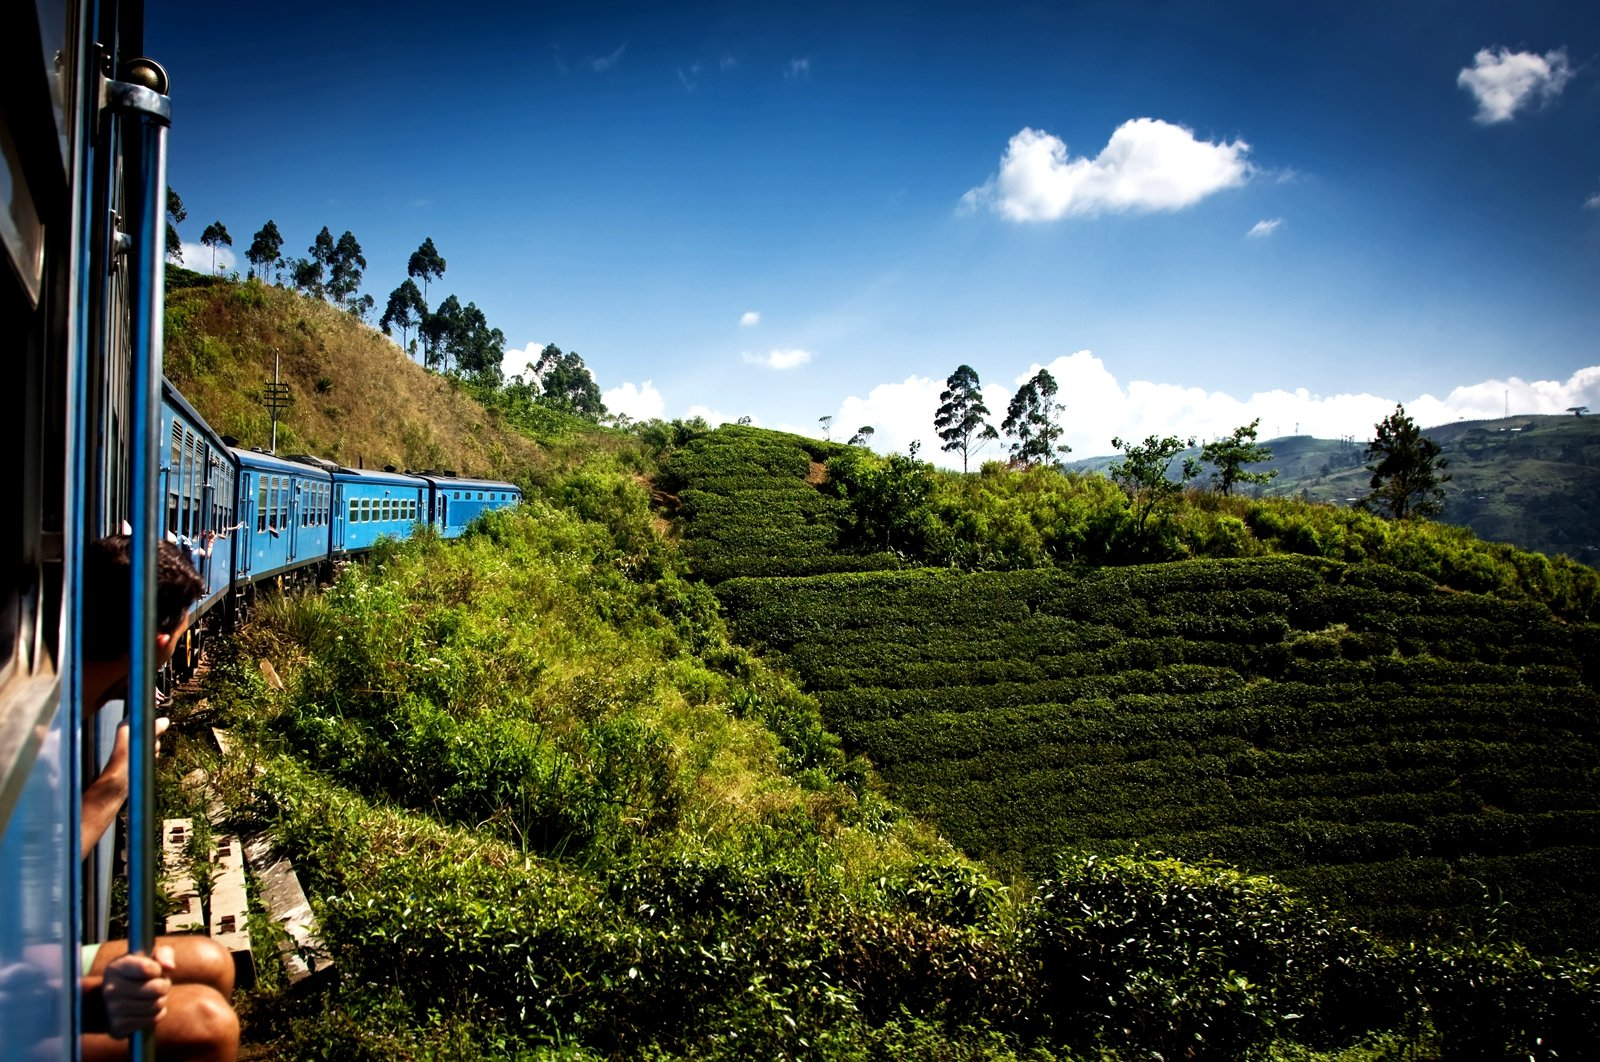 How to ride in a freight train in Nuwara Eliya